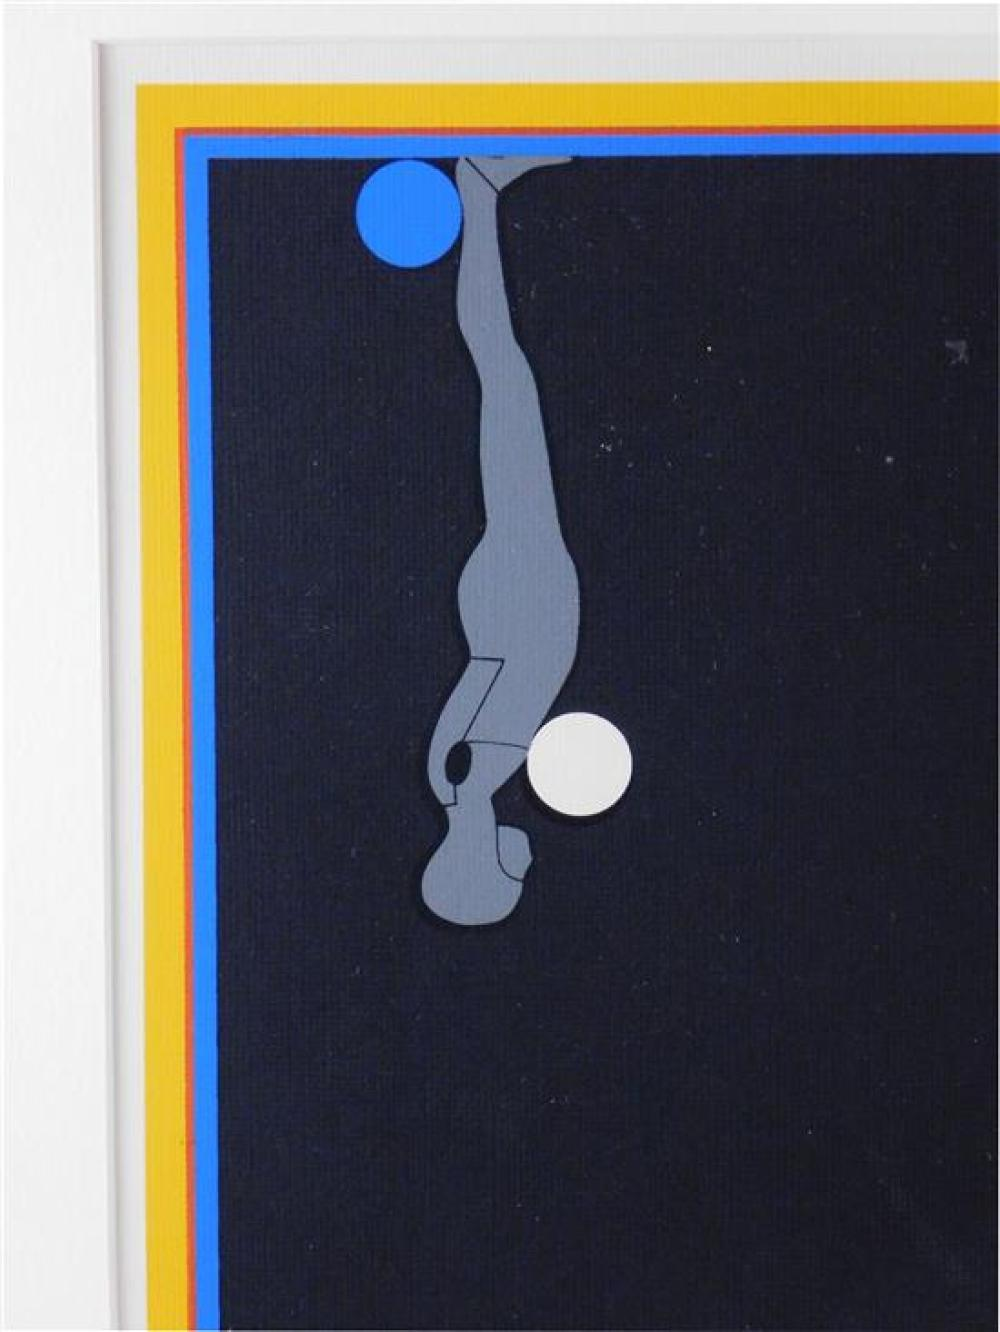 """Ernest Trova (American, 1927 - 2009), """"Four Figures and a Sphere"""", c. 1969, silkscreen, edition no. 87/150, from the """"Falling Men"""" s..."""